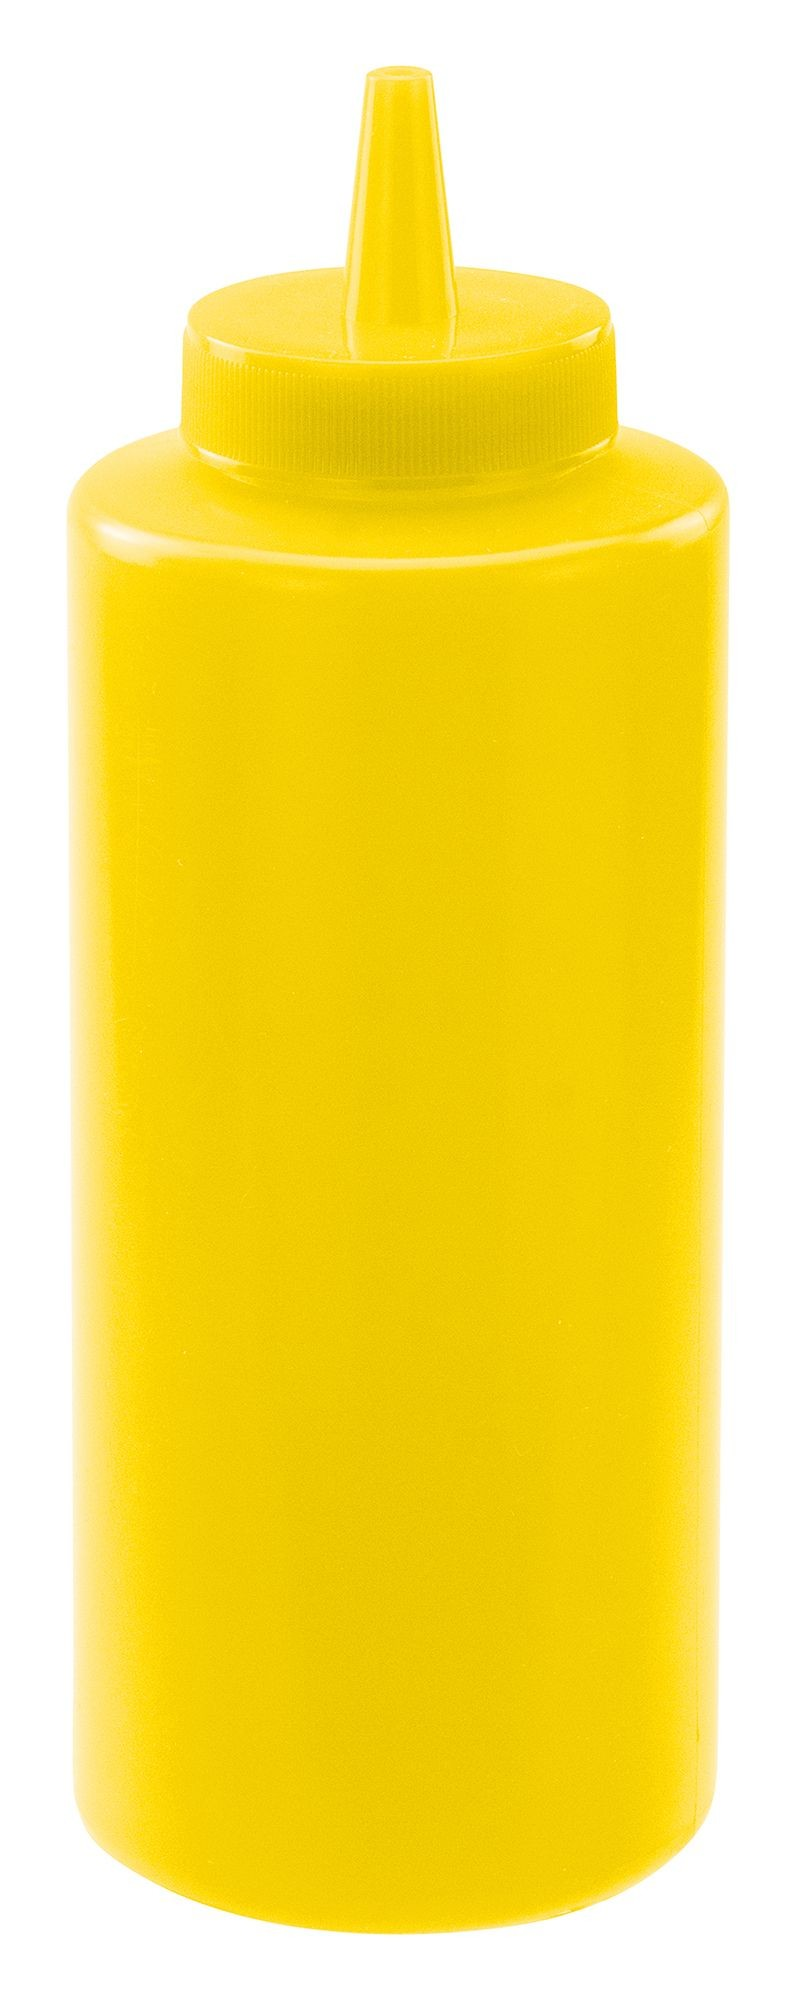 Winco PSB-12Y Yellow Plastic 12 oz. Squeeze Bottle